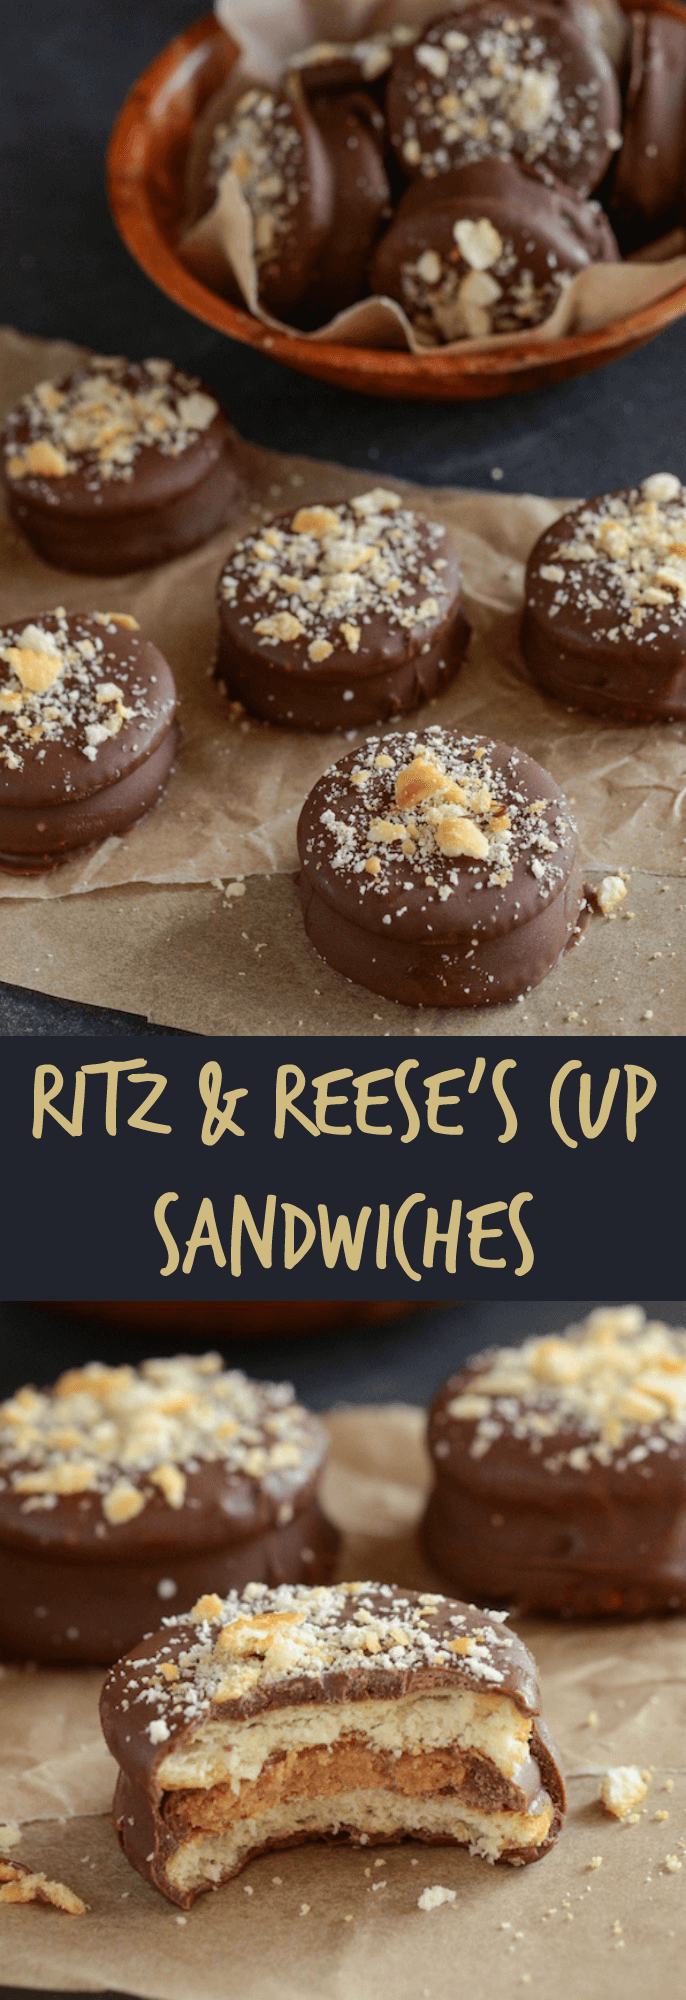 Ritz Reese's Cup Sandwiches coated in dark chocolate!